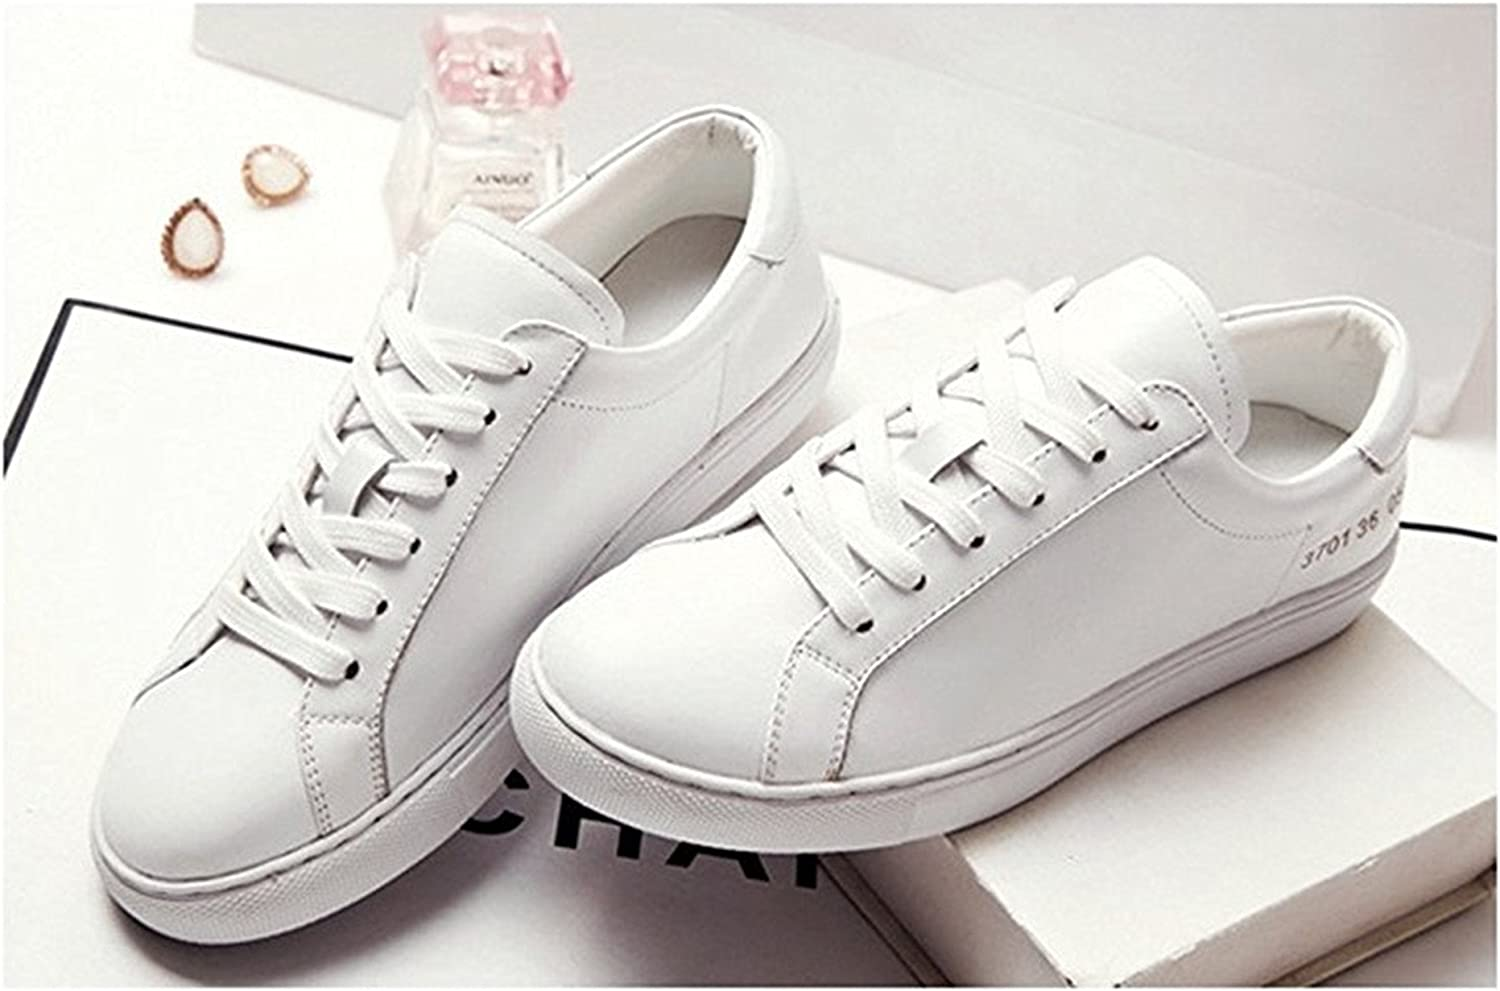 Teachay Fashionable Women's Adult Leather Classic shoes Fashion Sneaker